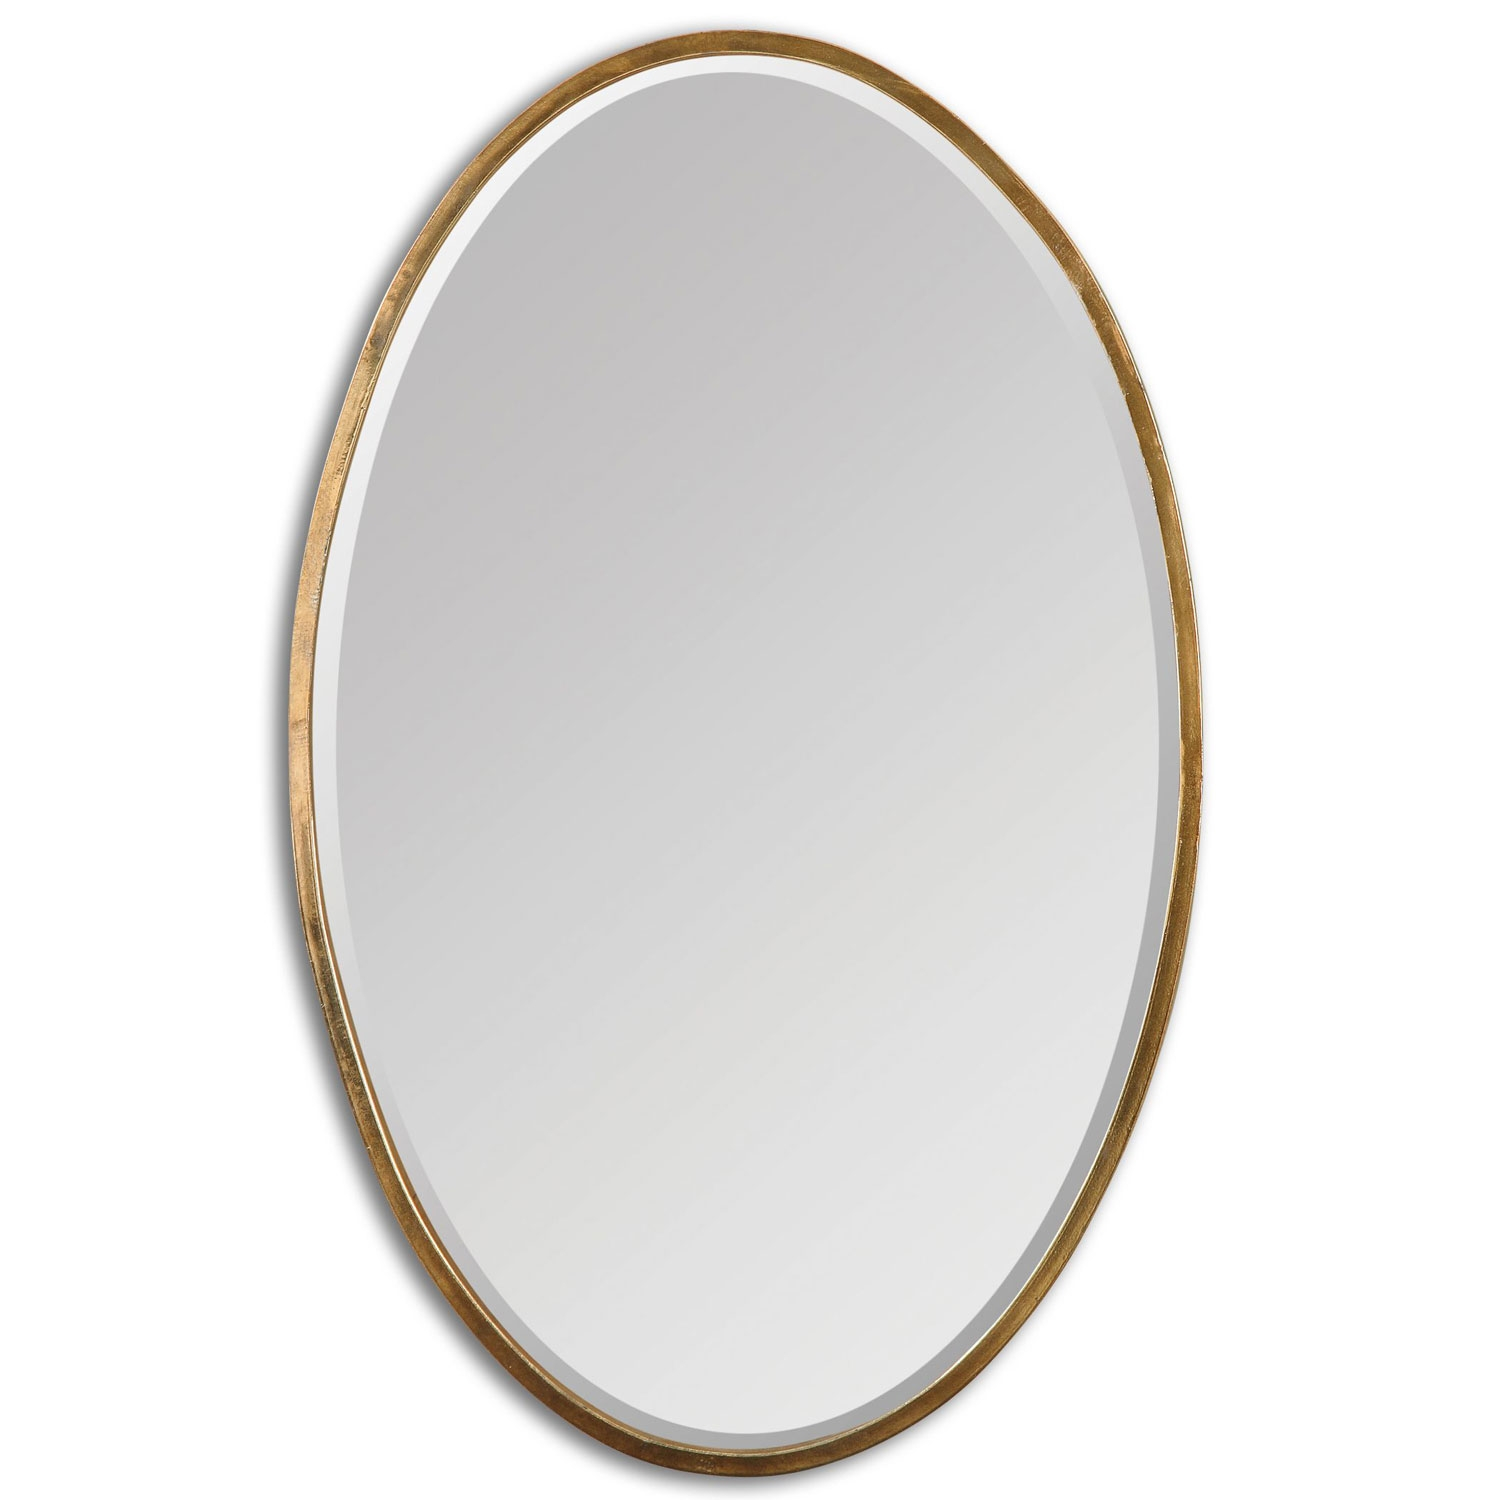 Triple Oval Gold Mirror Including Uttermost Imax Arteriors Home Intended For Triple Oval Mirror (Image 11 of 15)